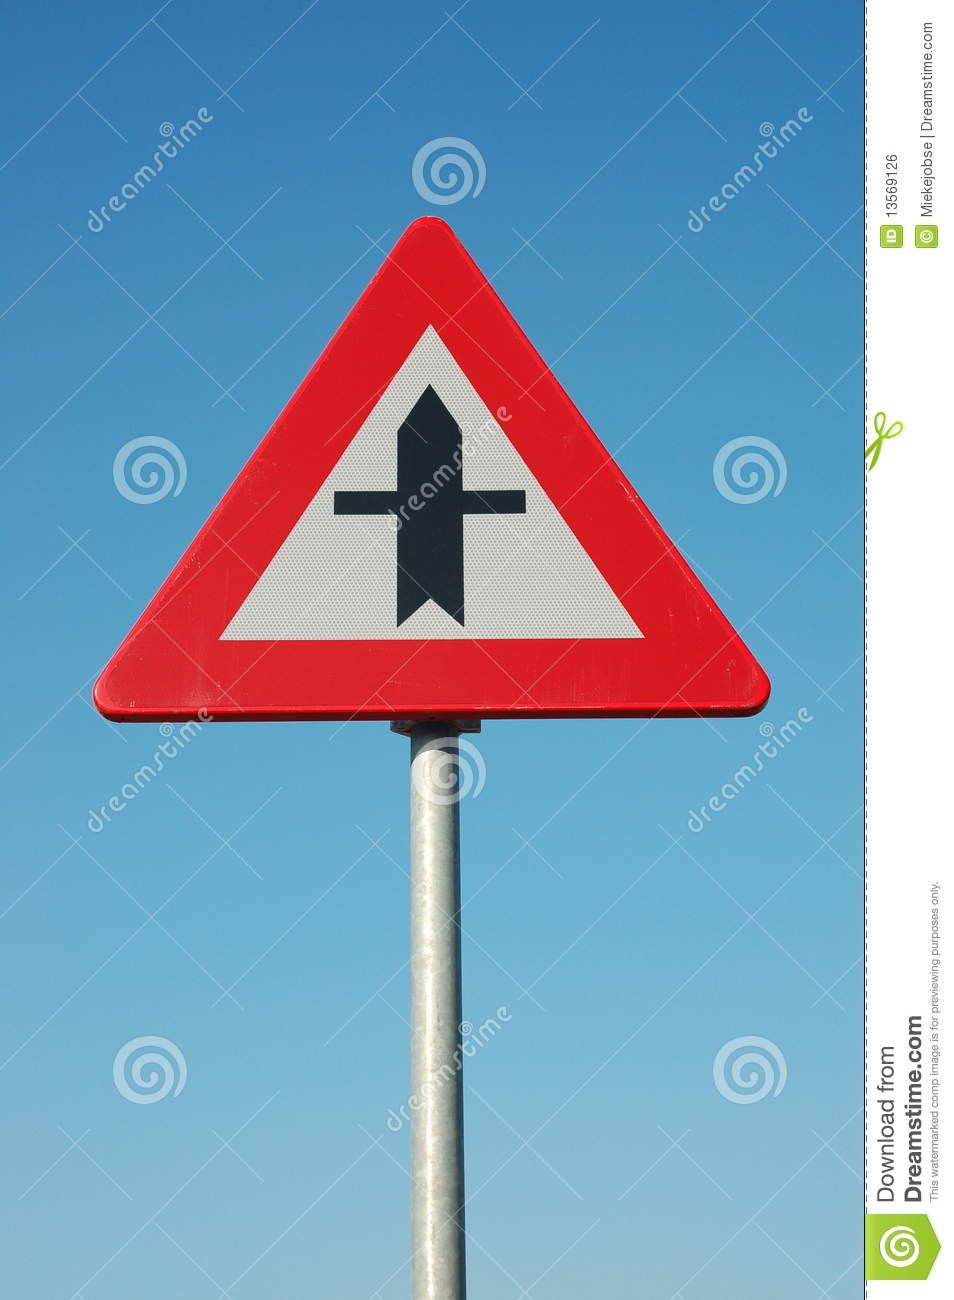 Transportation Background likewise Silver Gray Toyota Rav Hybrid Suv Trondheim Norway October Japan Sport Utility Vehicle likewise Access X moreover Winding Dangerous Mountain Road Serpentine Lighted Autumn Sun Photo Taken Lens Fisheye also Clipart Uk Road Signs. on road transport vector